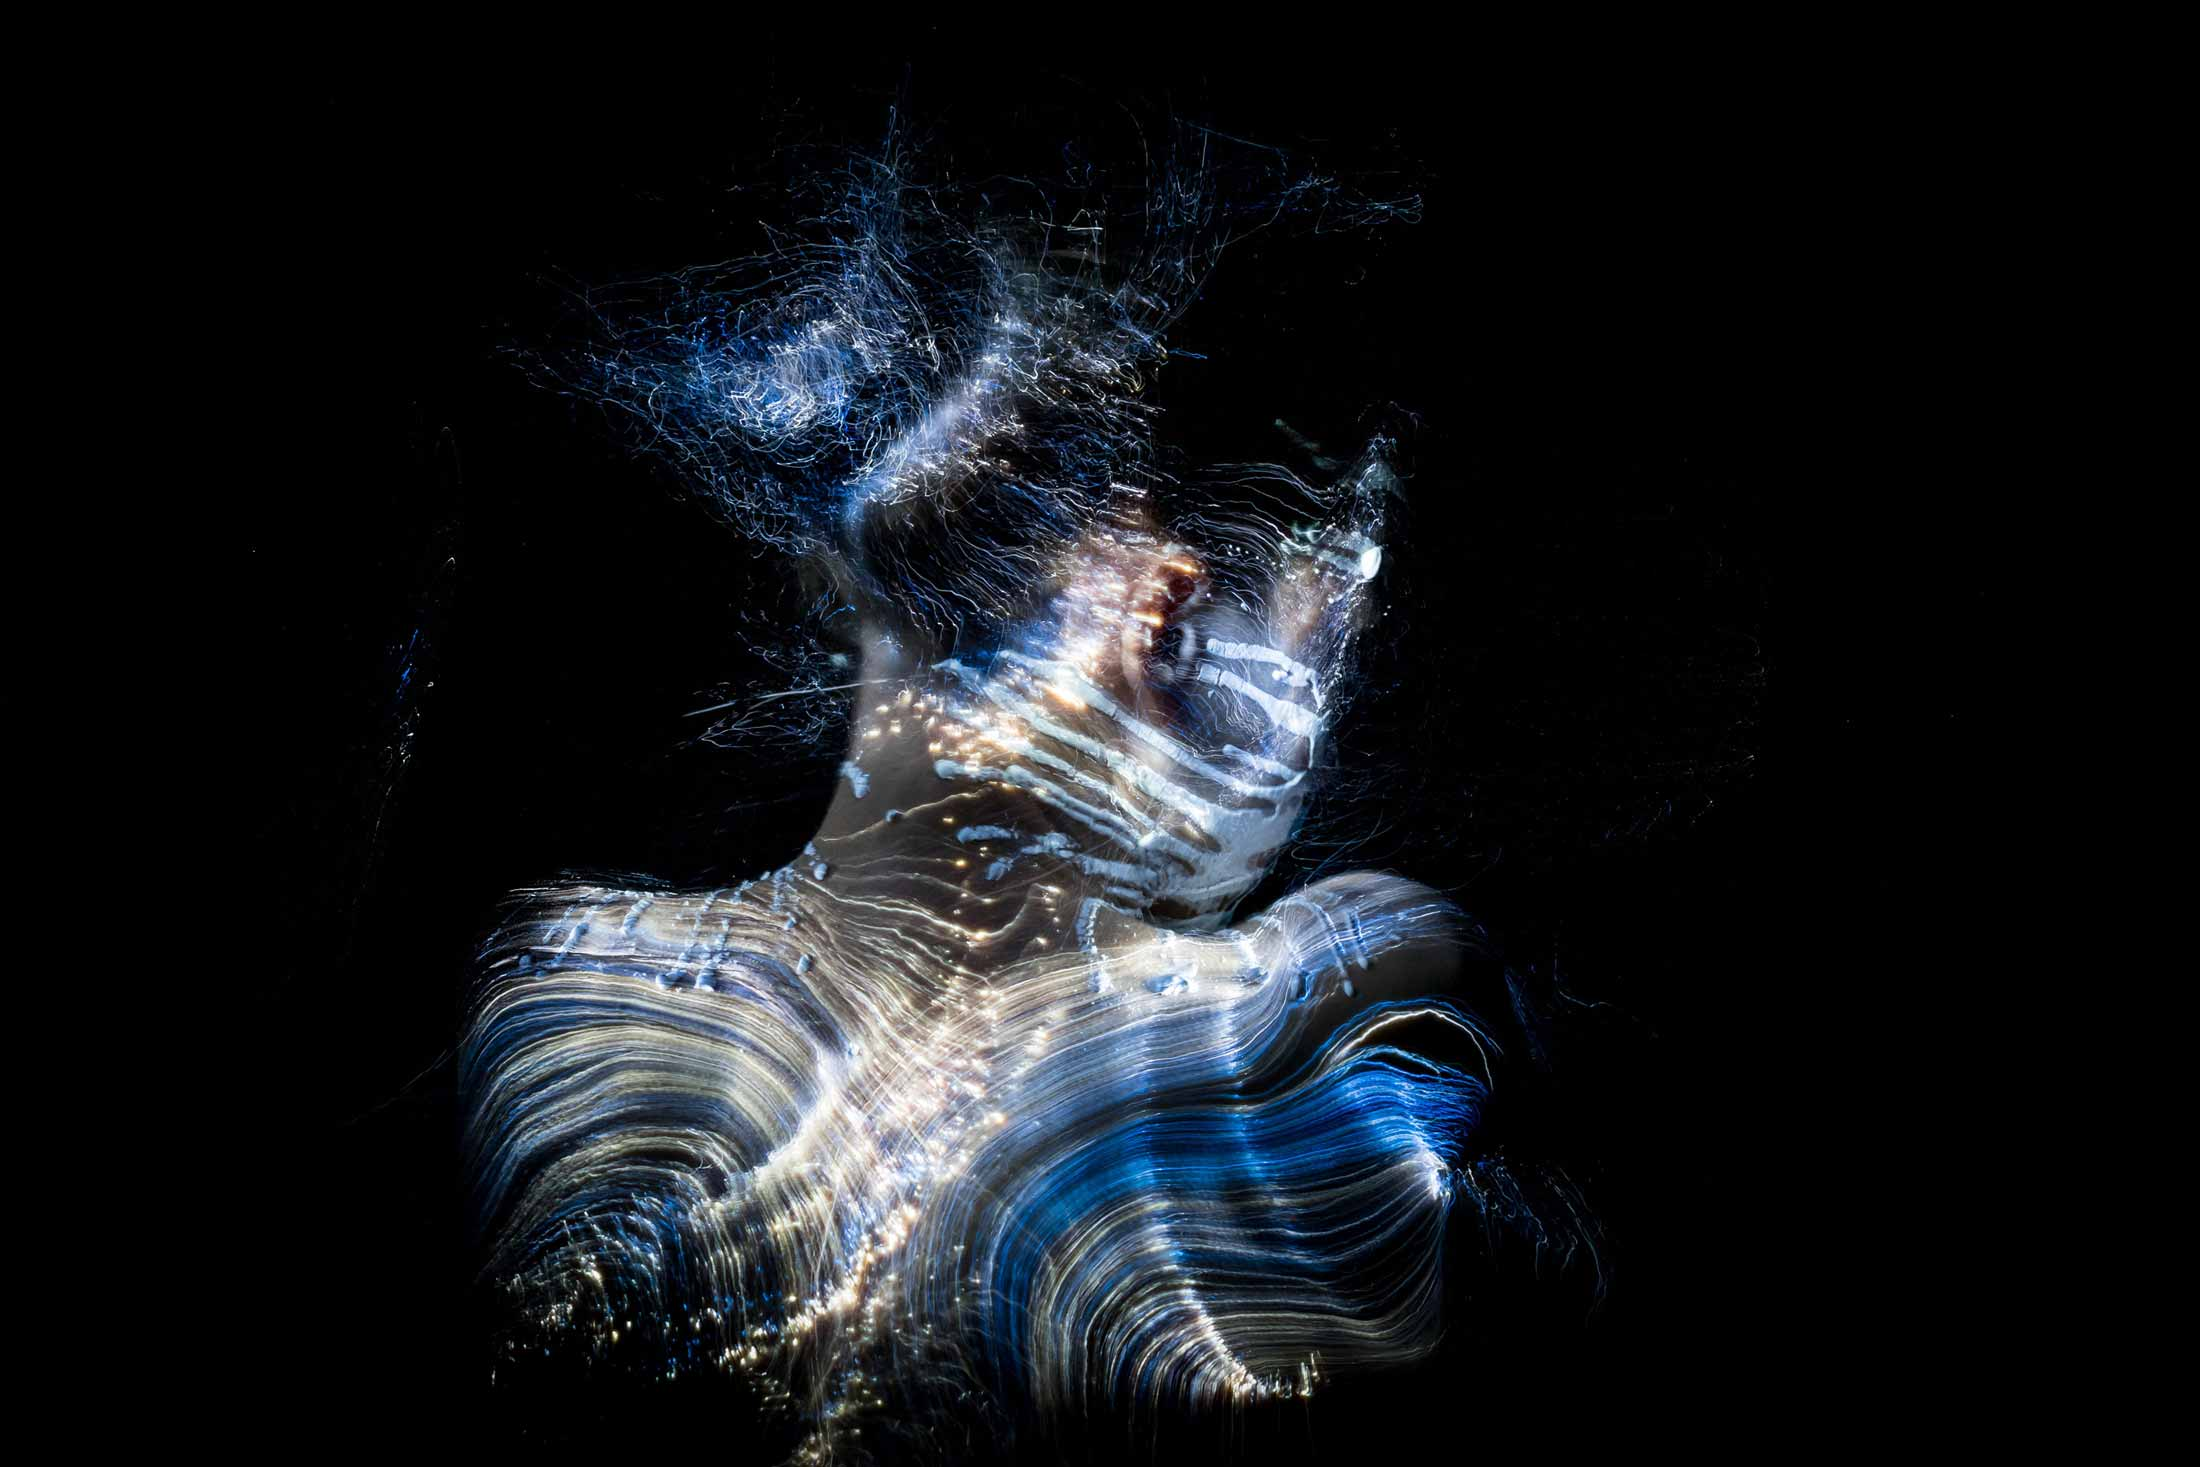 Fiber Optic Light Painting Portrait